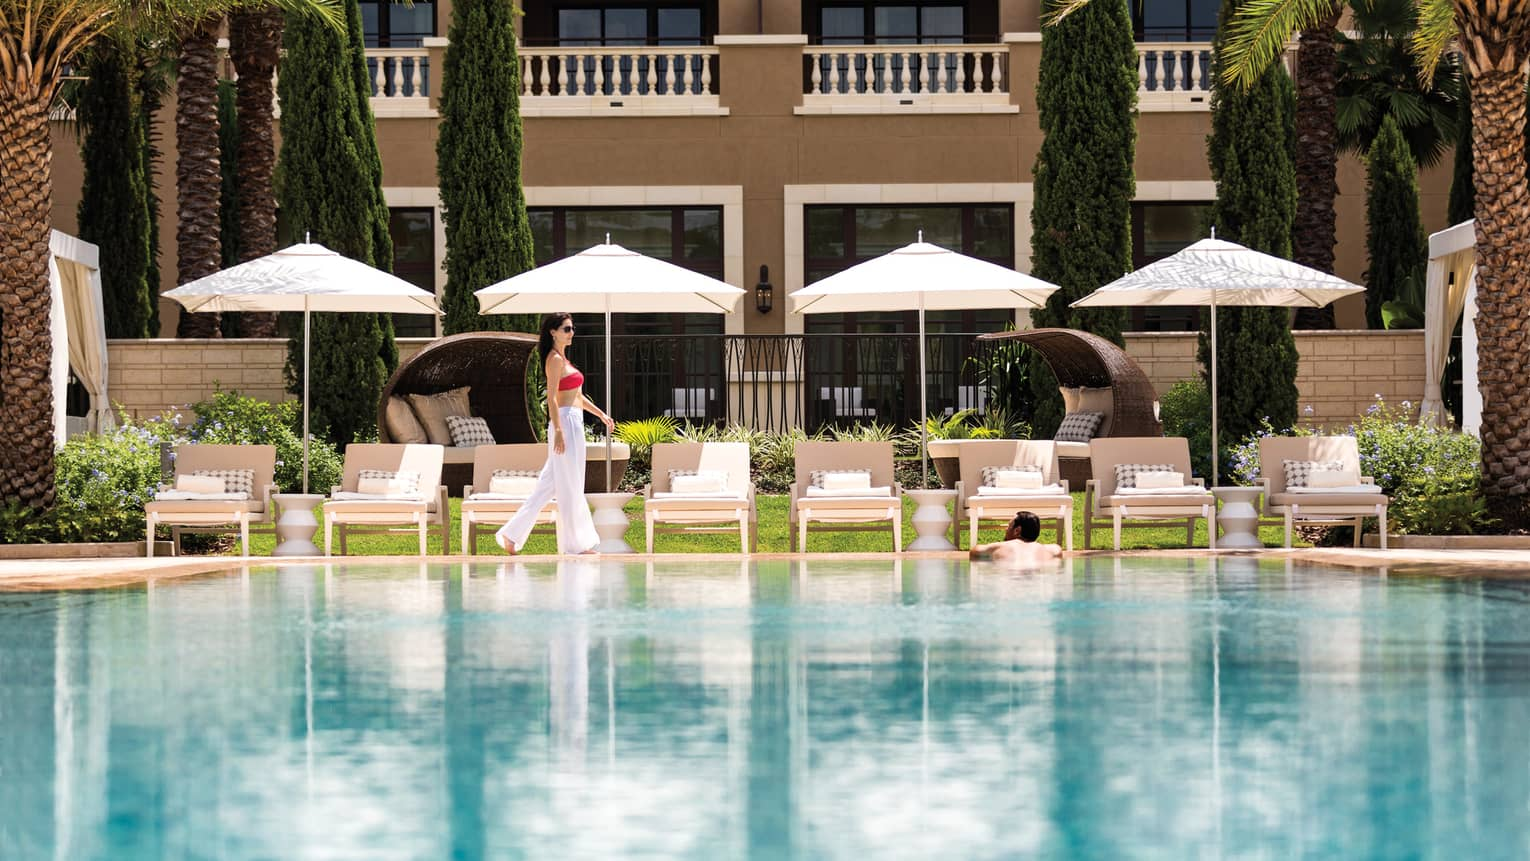 Woman walks by row of white patio chairs, umbrellas on outdoor swimming pool deck